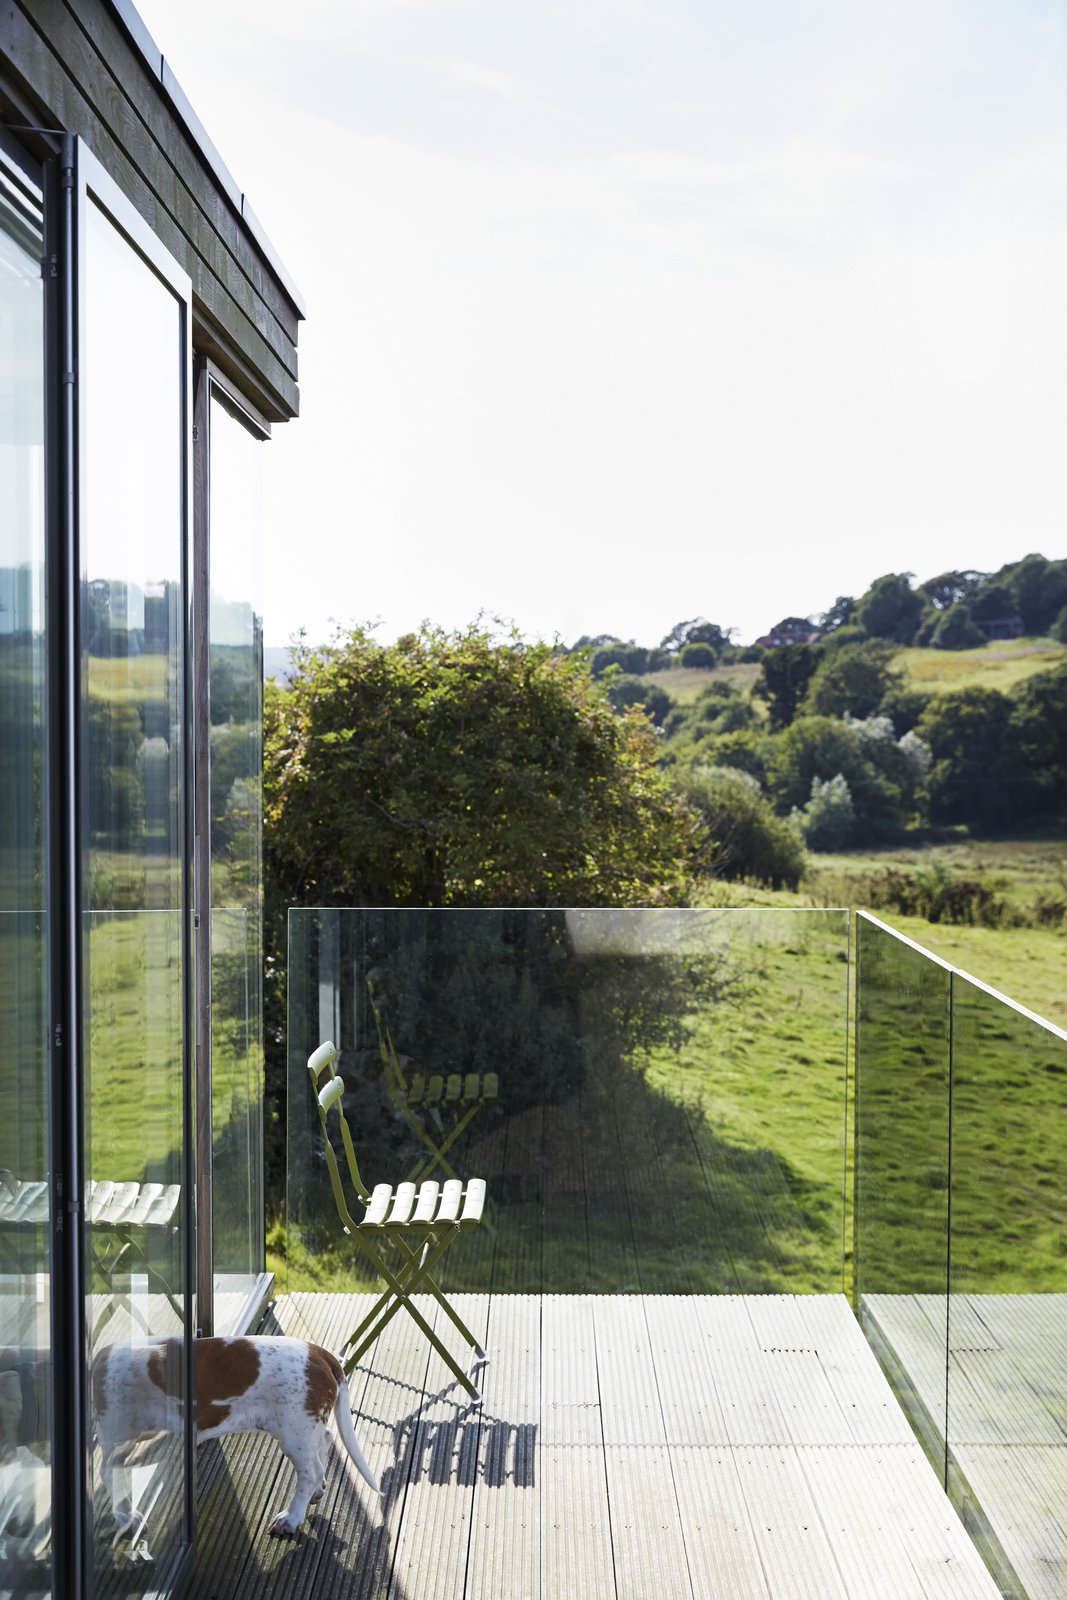 For uninterrupted views, the balcony is wrapped in glass panels.  Pett Level, England Dwell Magazine : November / December 2017 Tagged: Outdoor and Wood Patio, Porch, Deck.  outside by Molly E. Osler, Interior Design from Fall in Love With This British Architect's Colorful Weekend Retreat